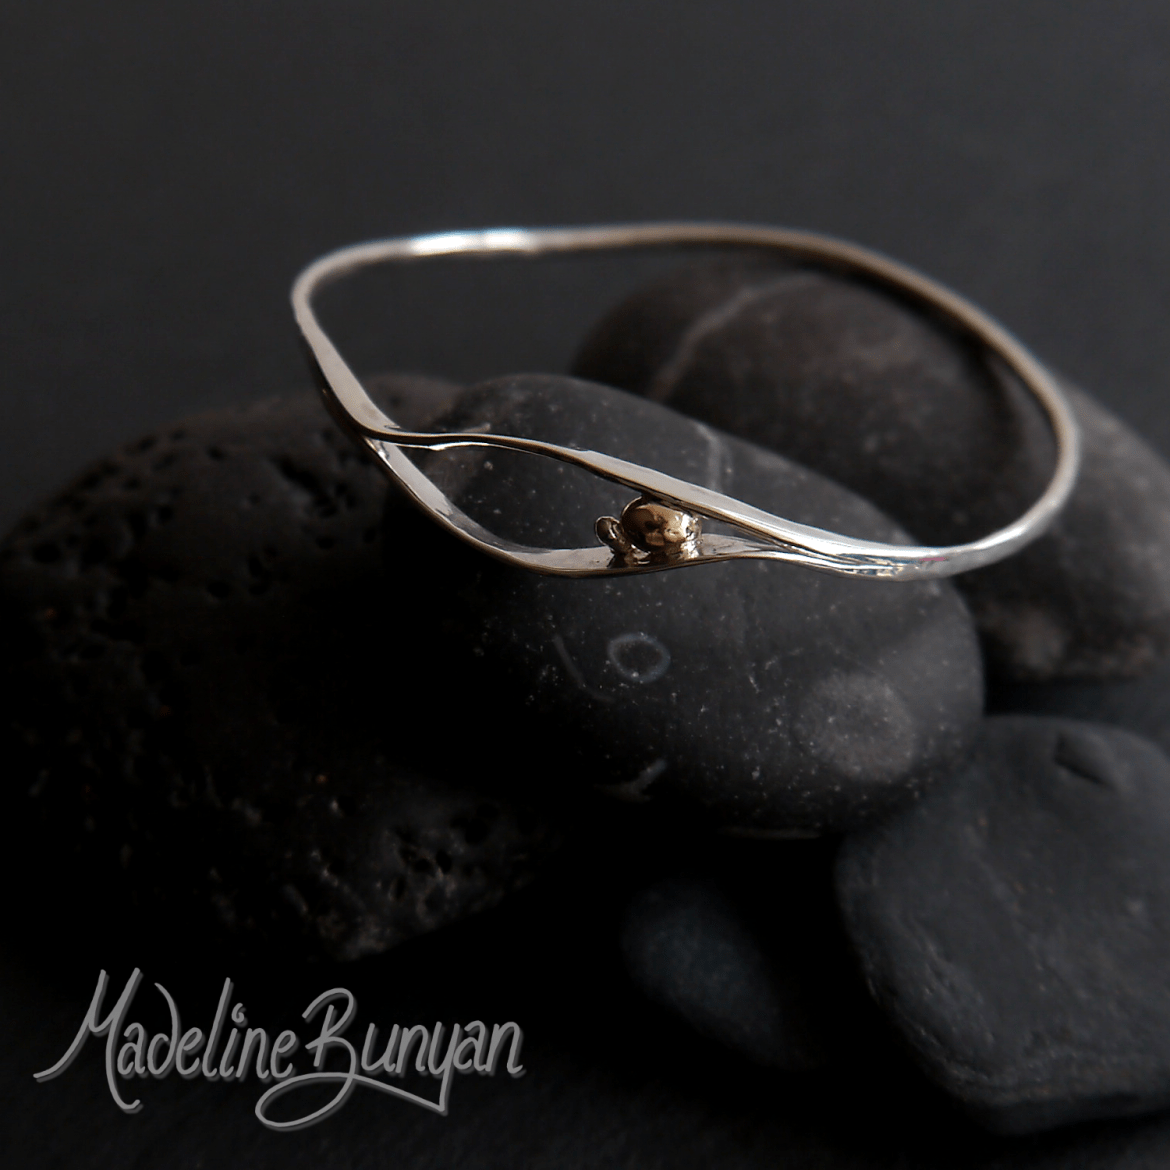 Pebble Bangle, Sterling Silver, with 9 carat Gold